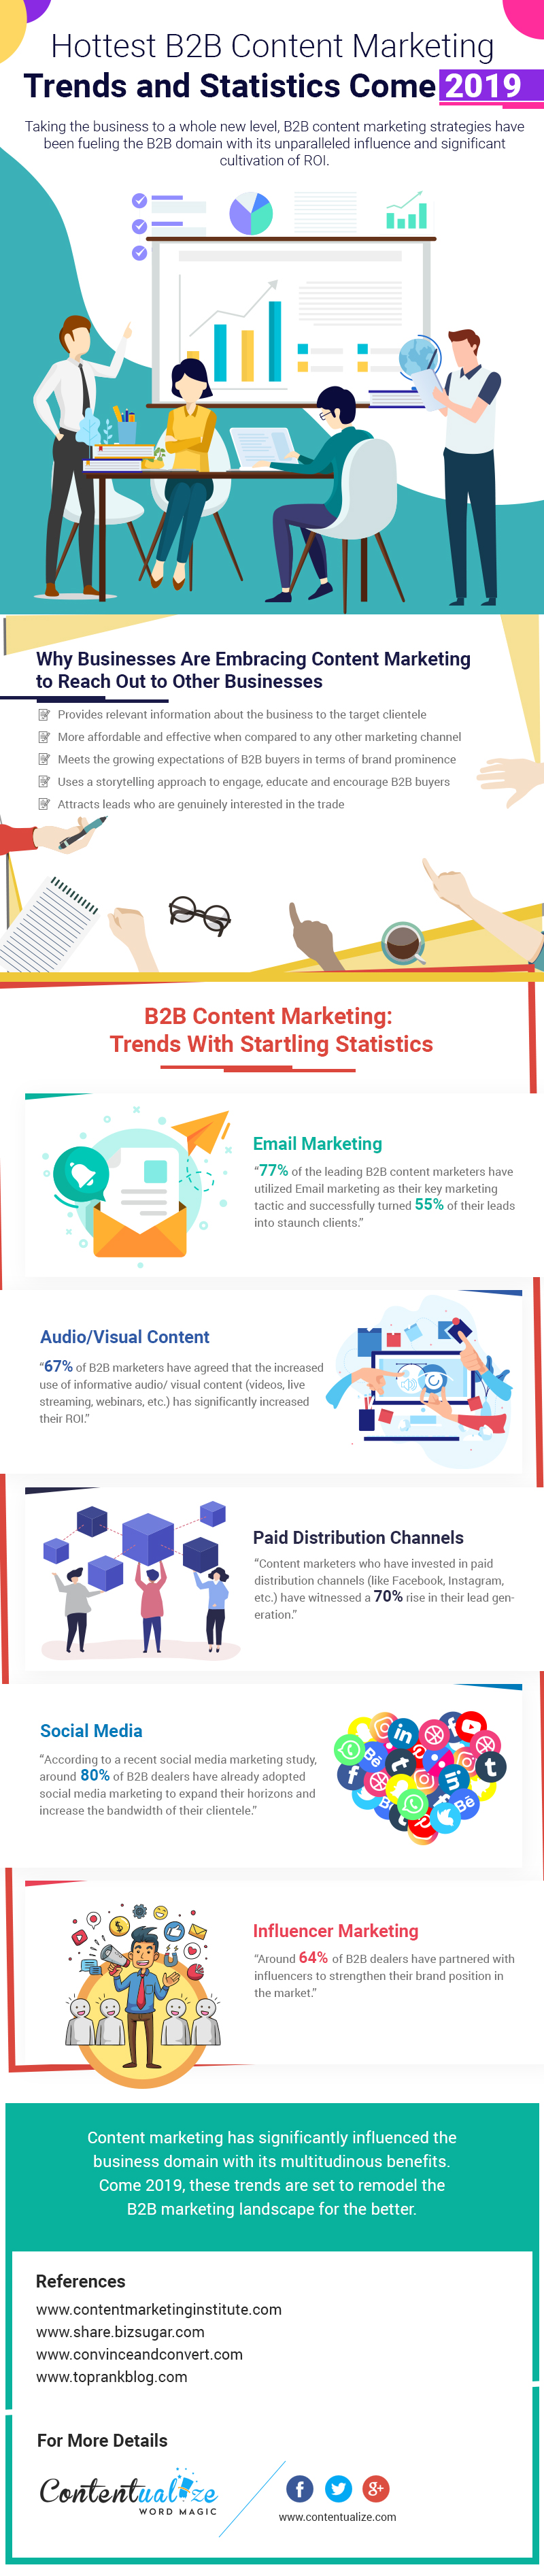 Hottest B2B Content Marketing Trends and Statistics in 2019